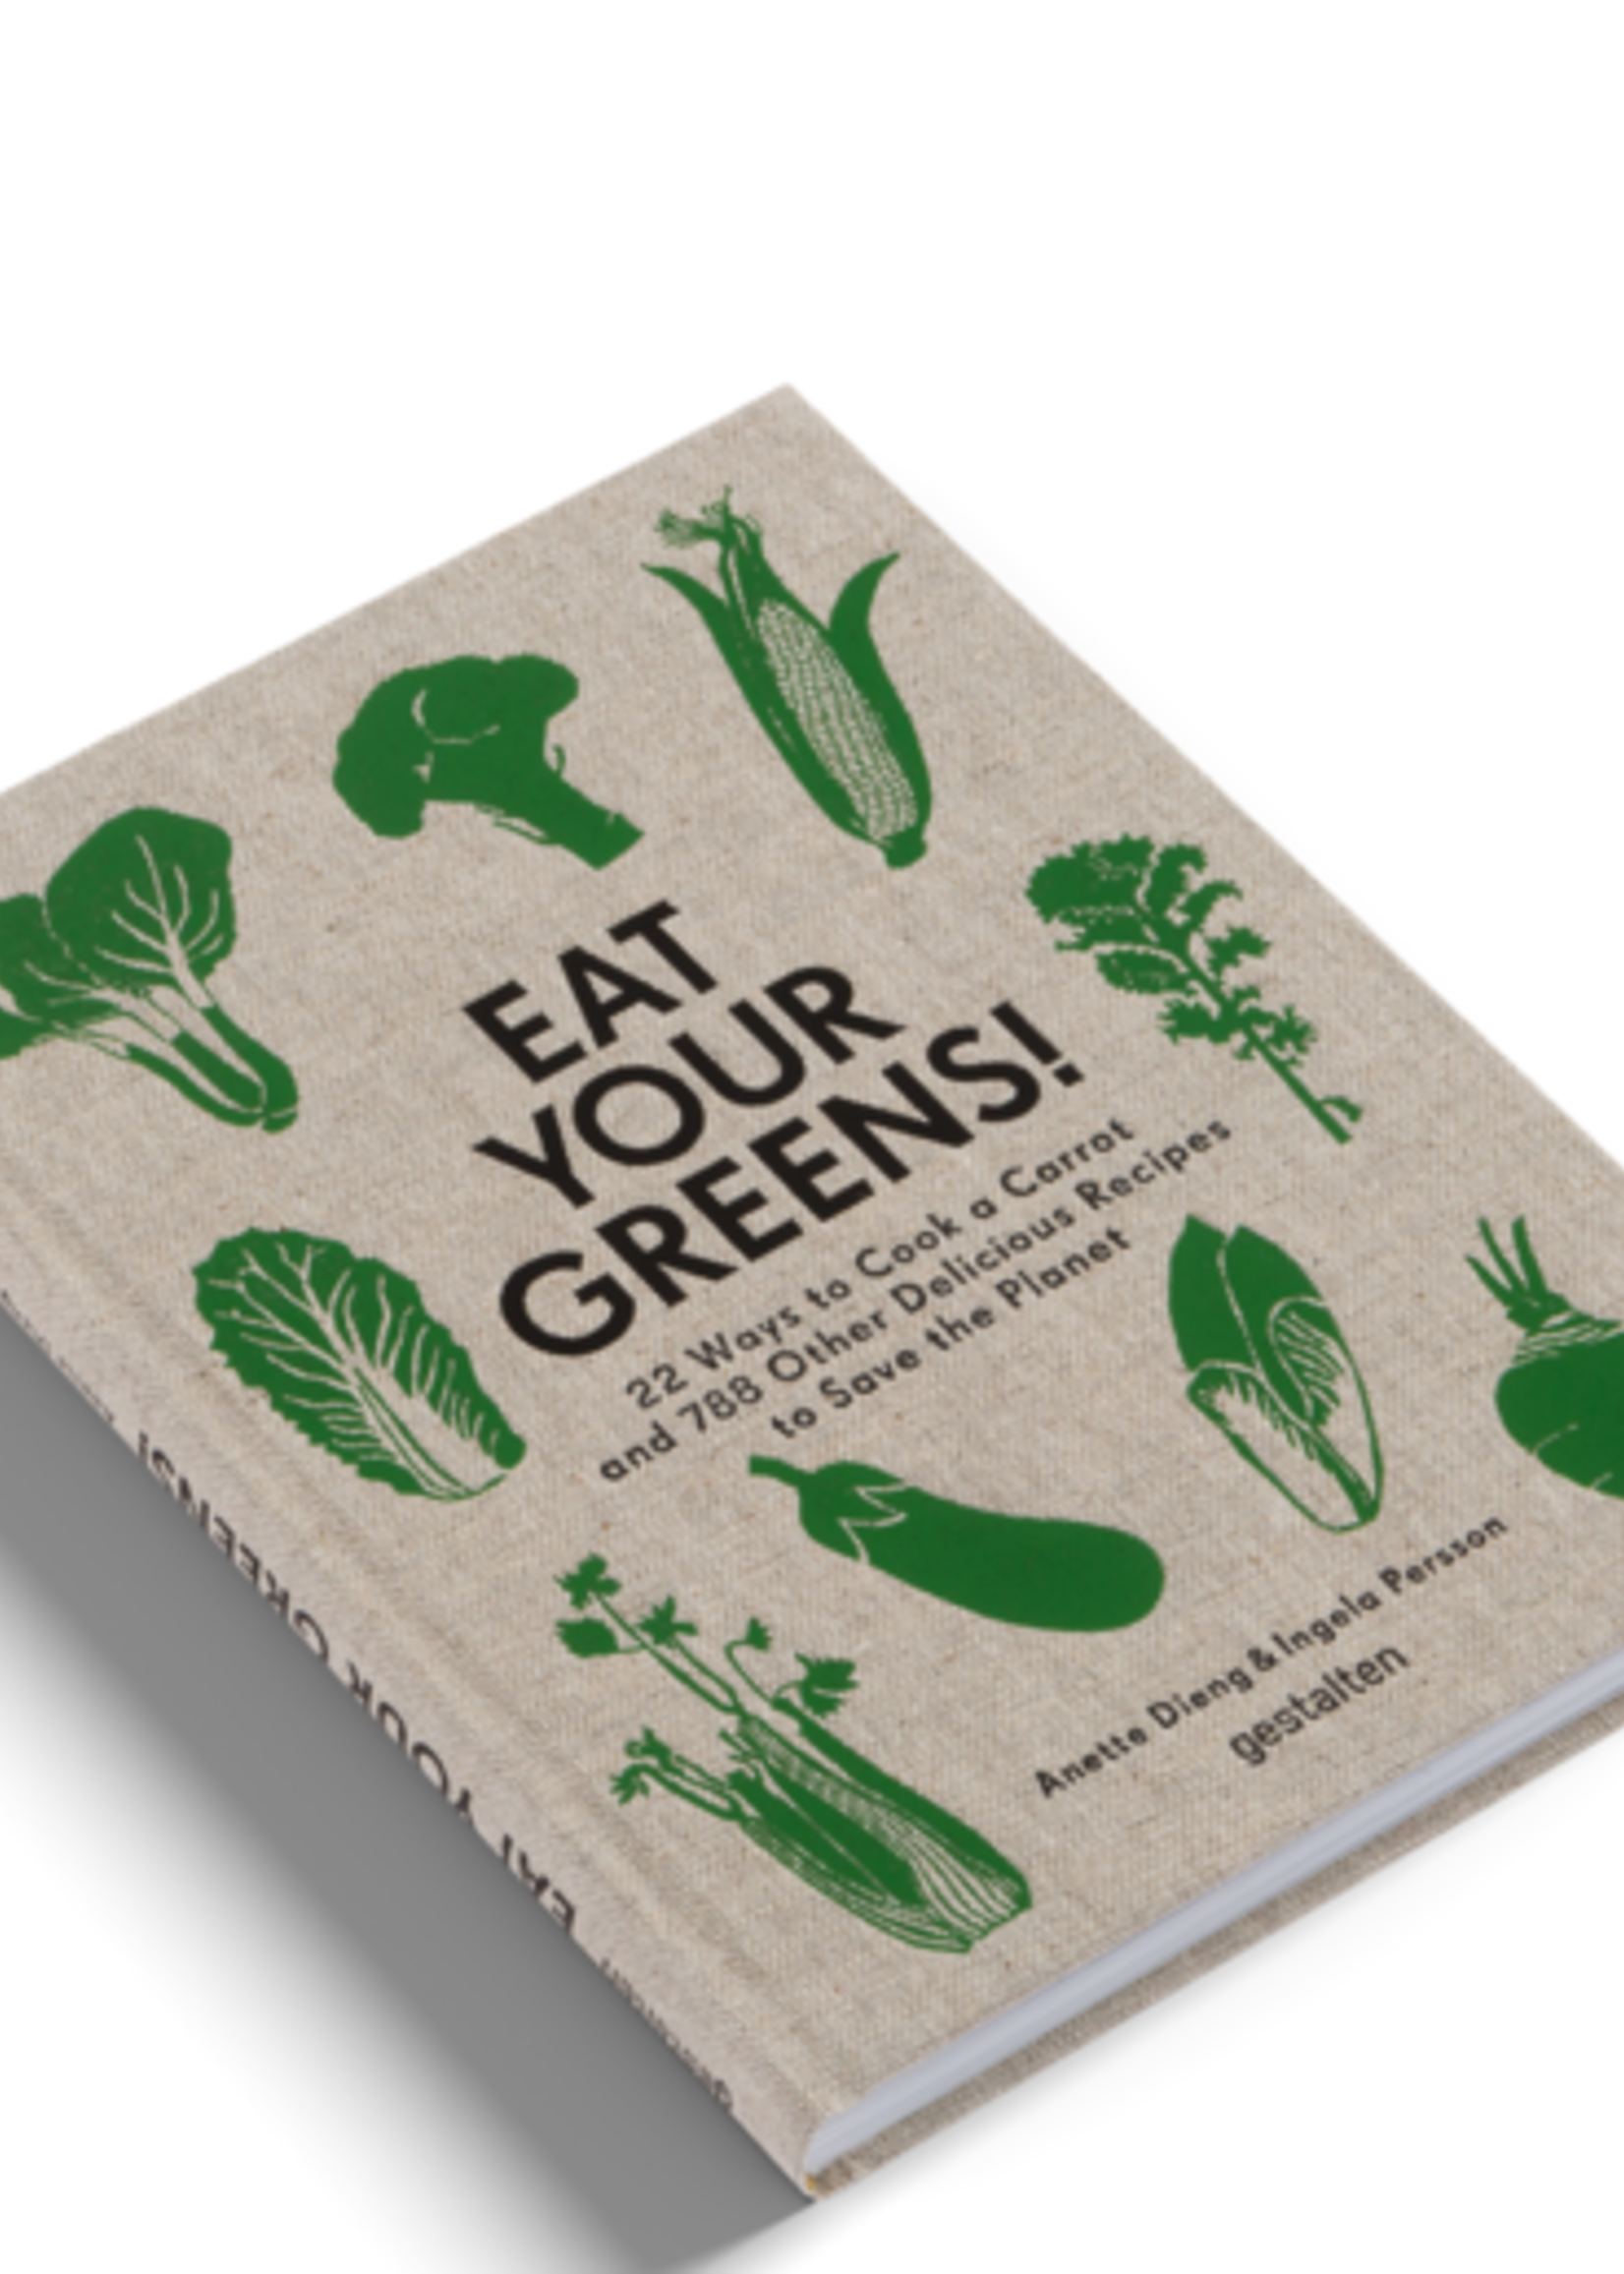 Gestalten LKG Book Eat your greens